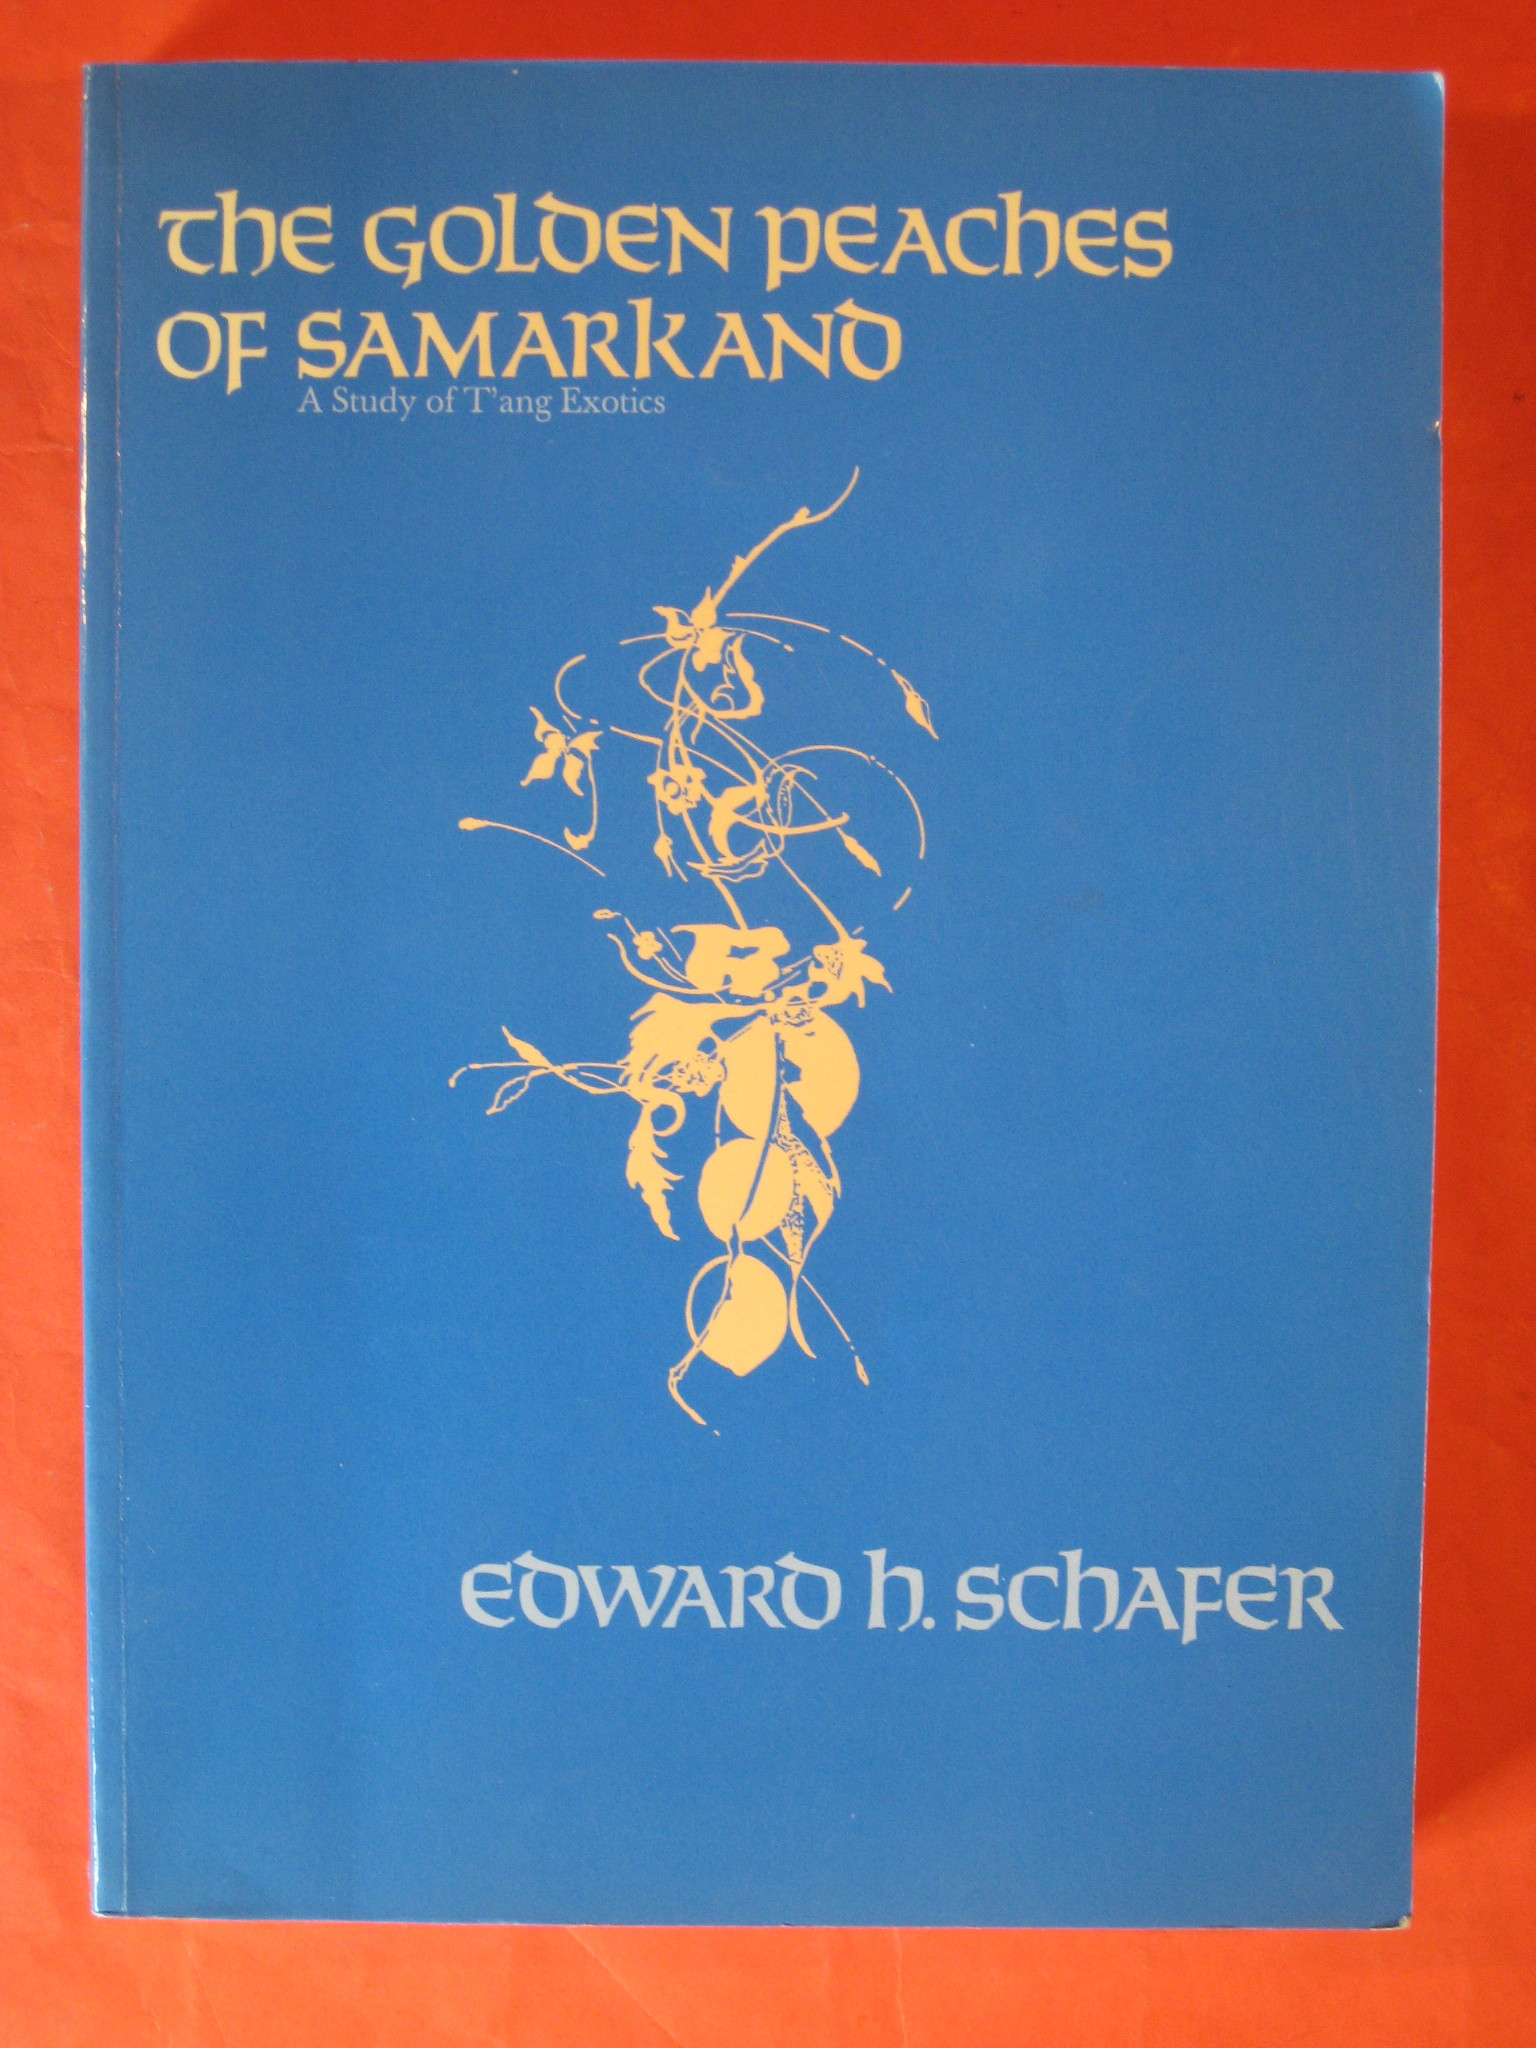 The Golden Peaches of Samarkand: A Study of T'ang Exotics, Edward H. Schafer